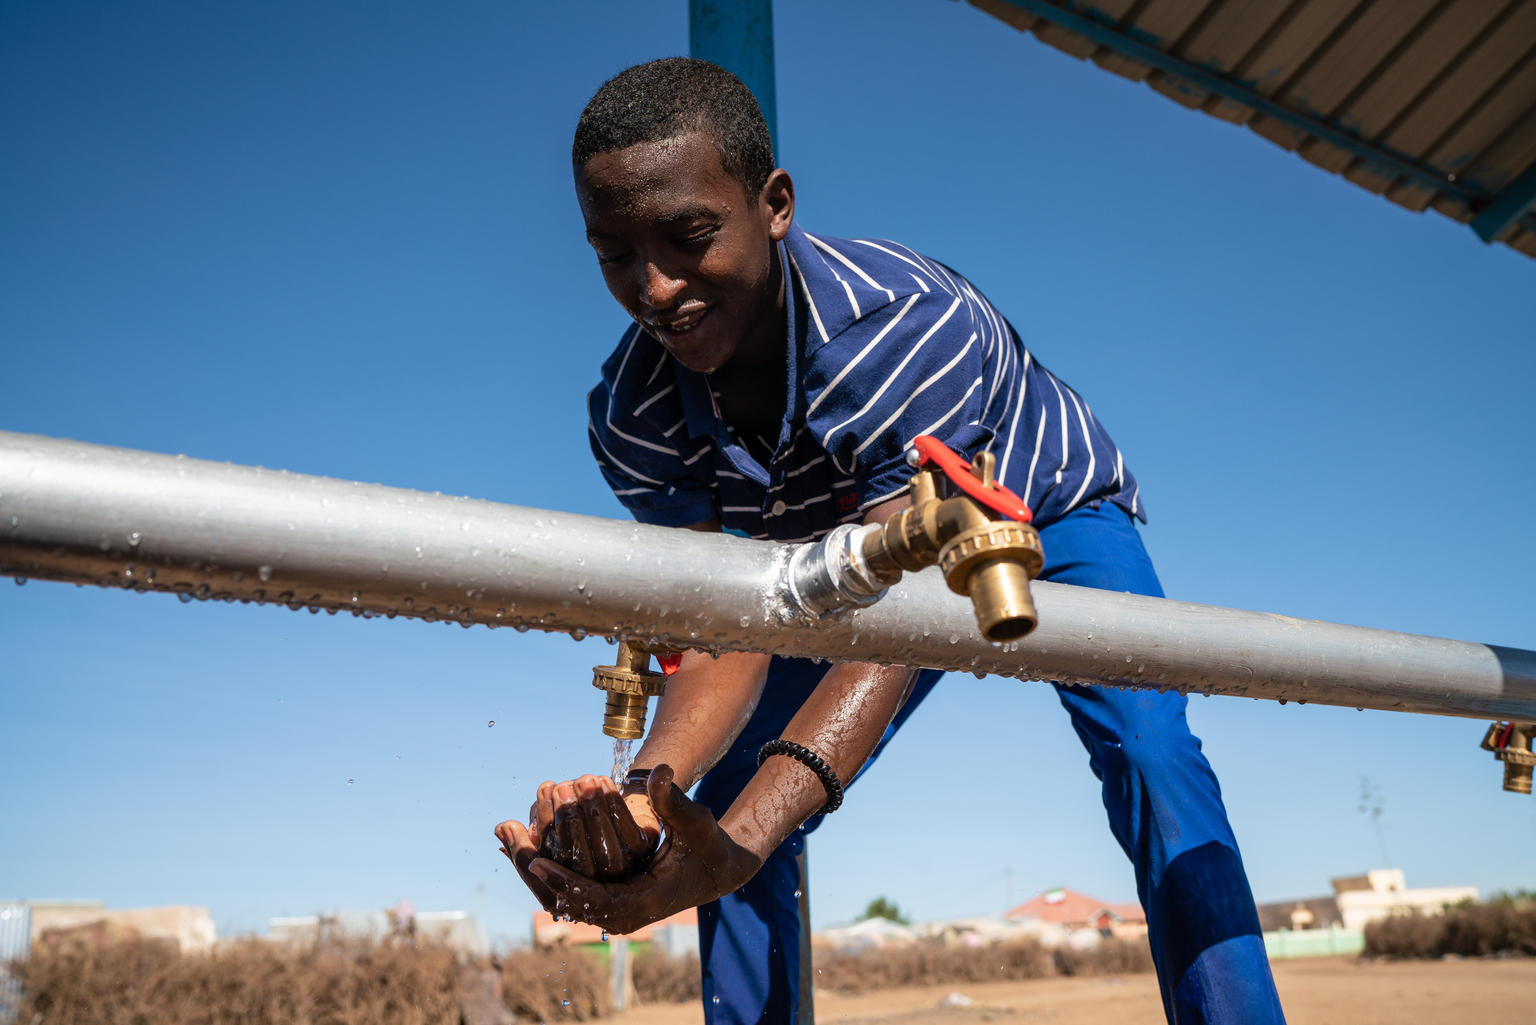 A boy hunched over a water tap, Somaliland.